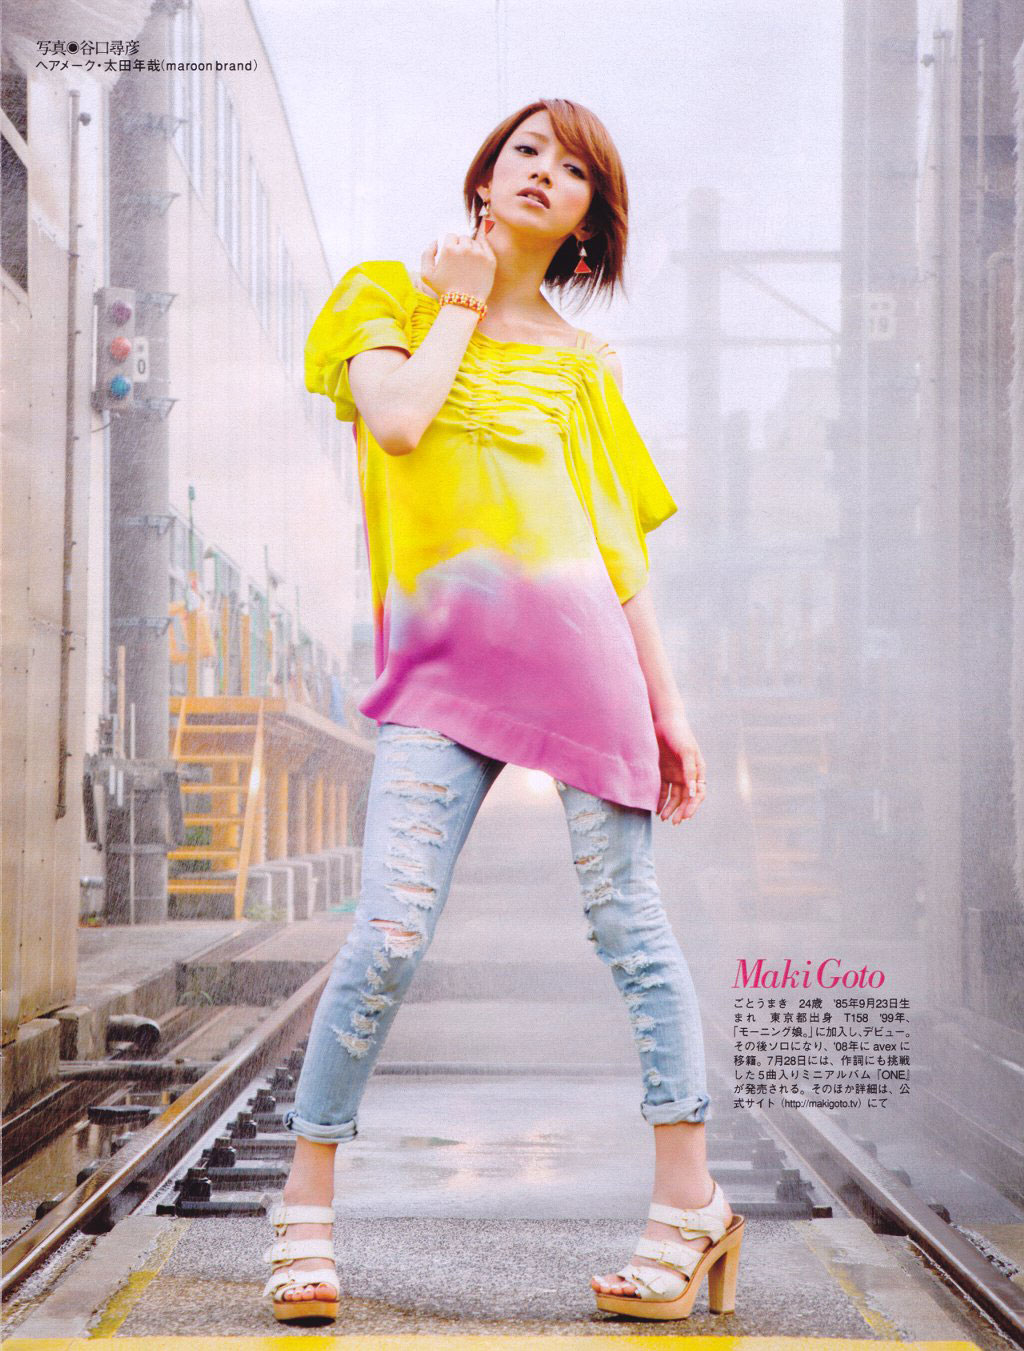 Maki Goto Japanese Flash Magazine